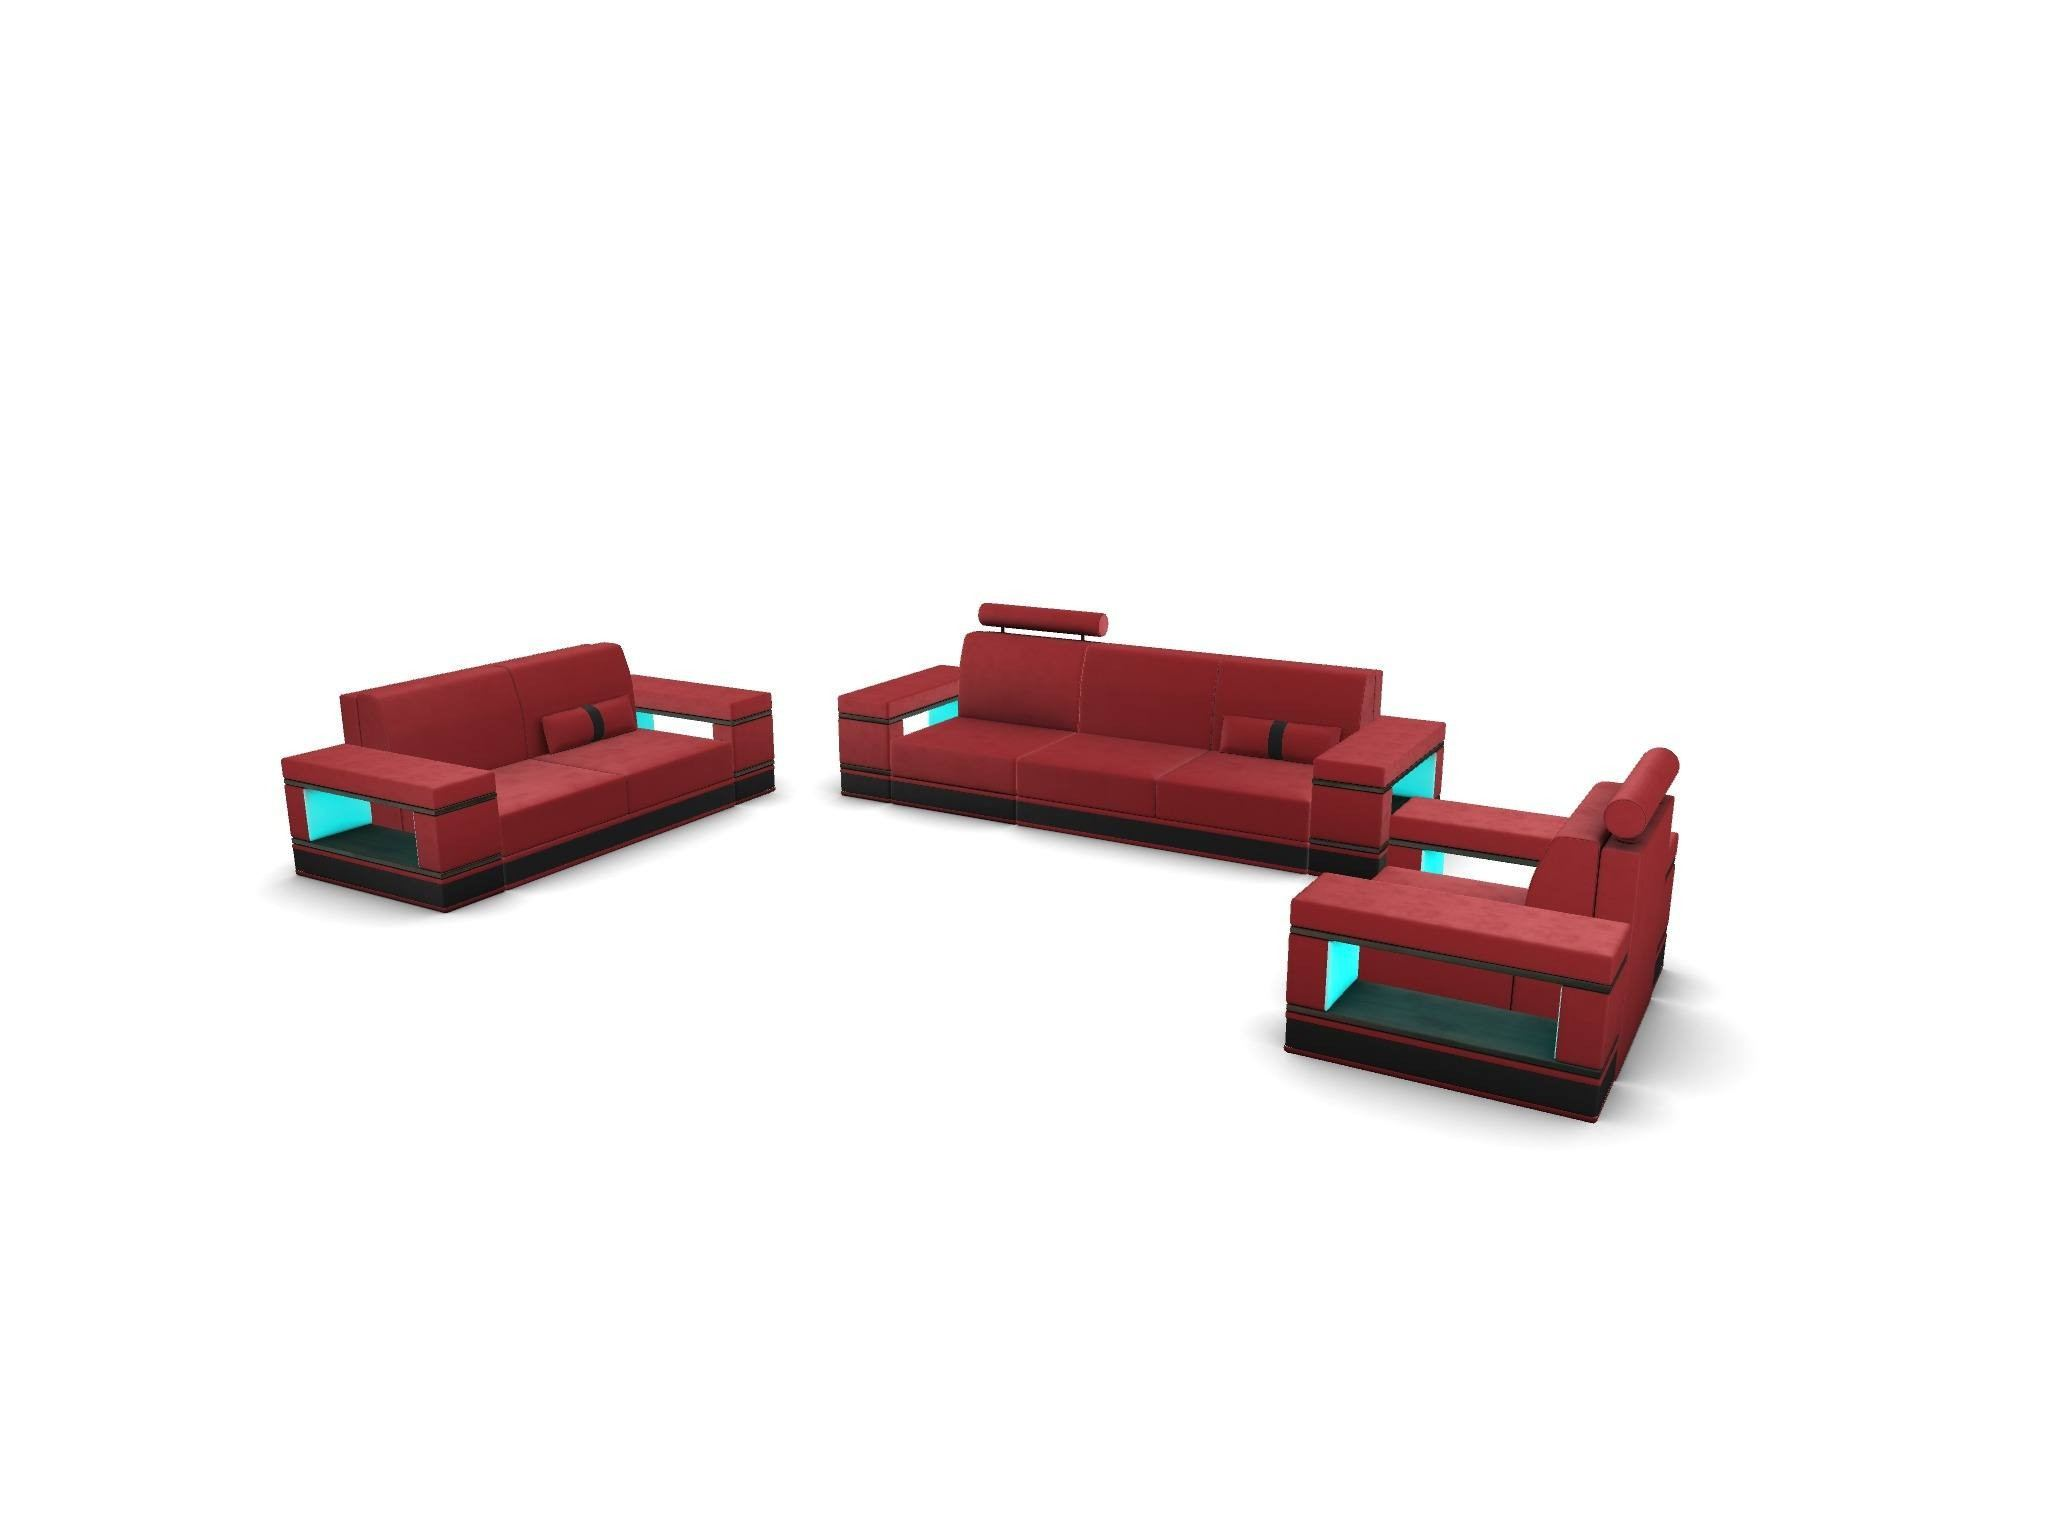 Sofa Set Los Angeles 321 with adjustable Headrest - red